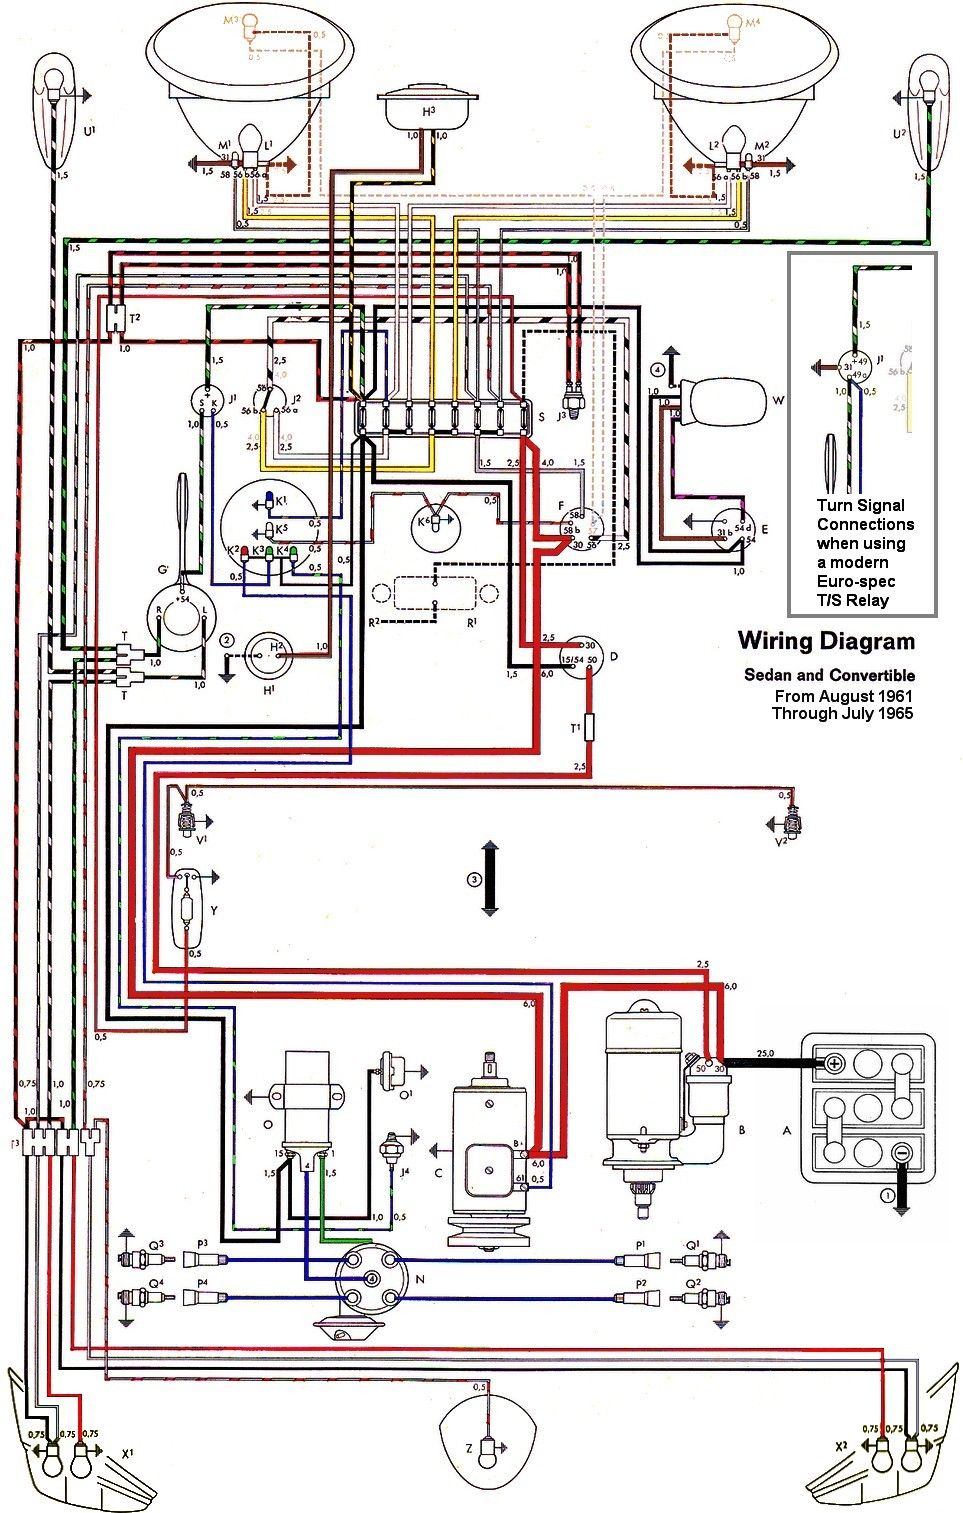 small resolution of 1964 vw wiring diagram diagram data schema 1964 vw wiring diagram